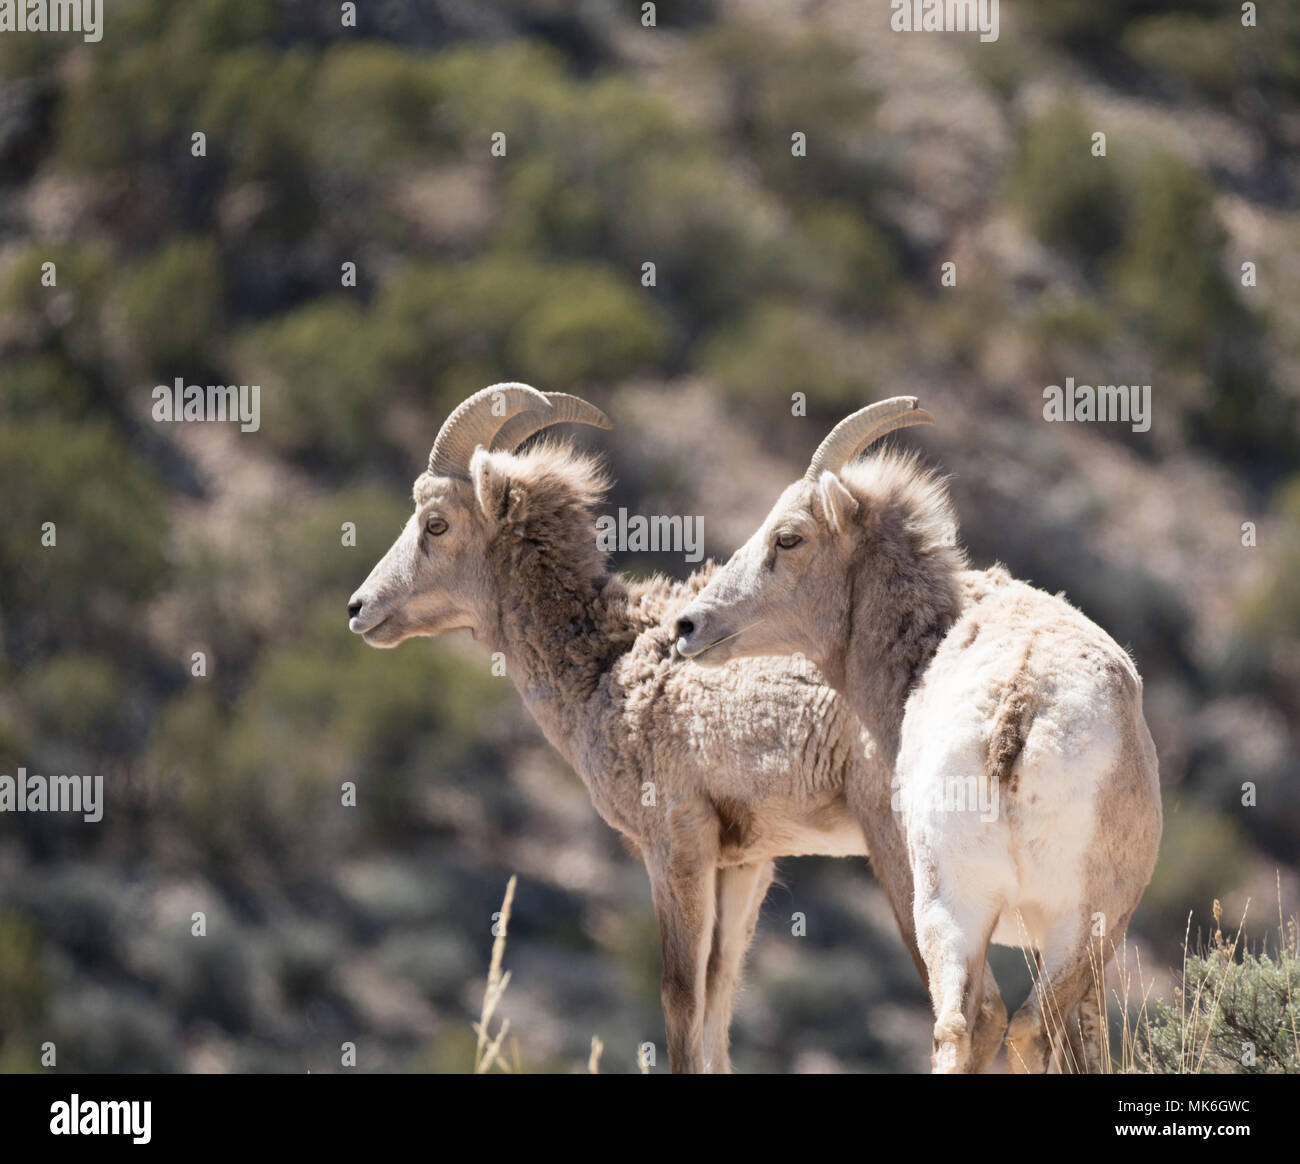 Two Bighorn sheep ewes with their backs to the camera, looking left. Photographed in Bighorn Canyon National Recreation Area. Stock Photo